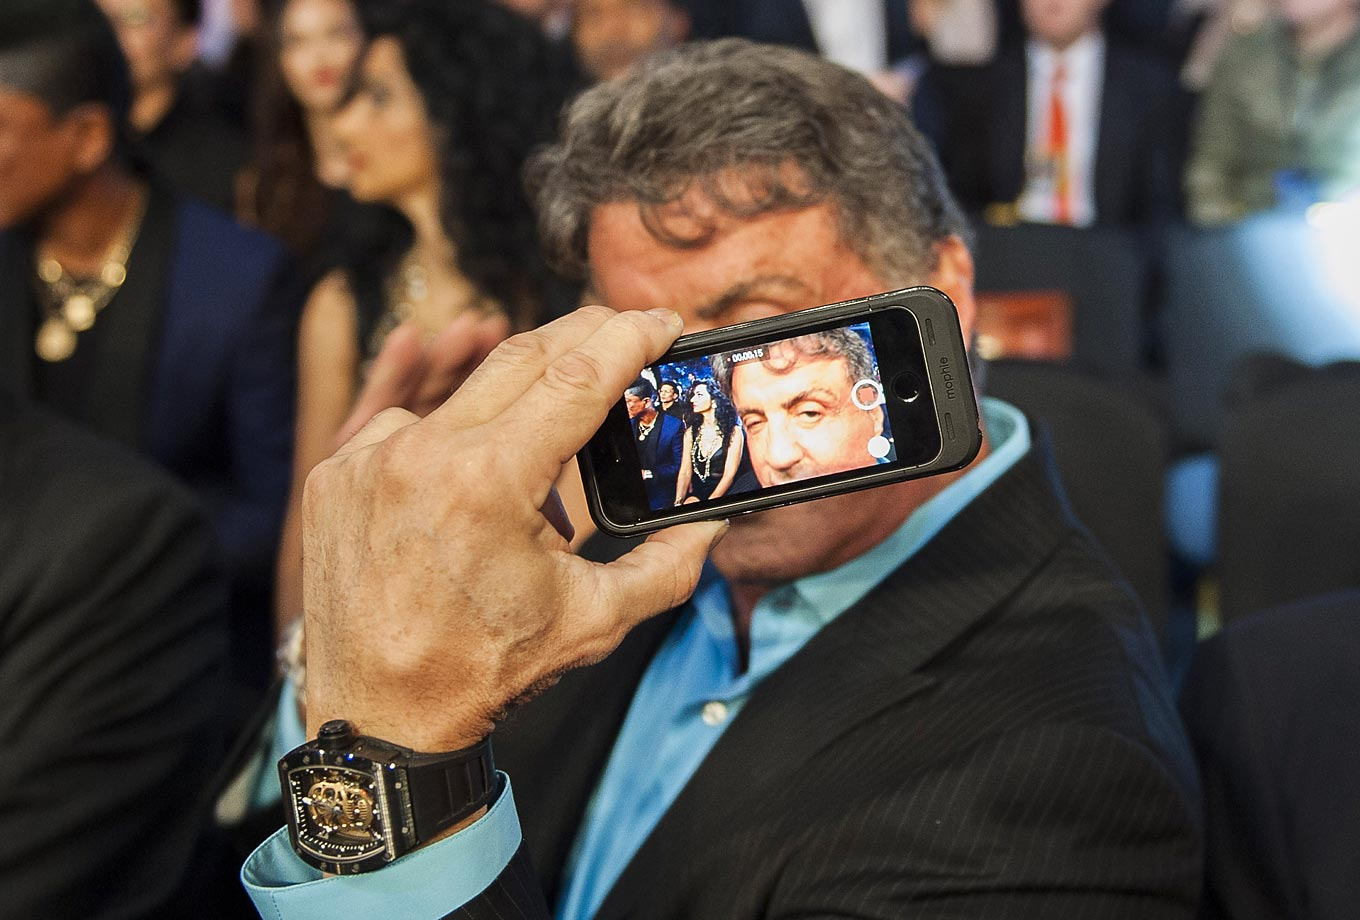 Sylvester Stallone shows a selfie picture he took ringside before the match between Jessie Vargas and Antonio DeMarco.